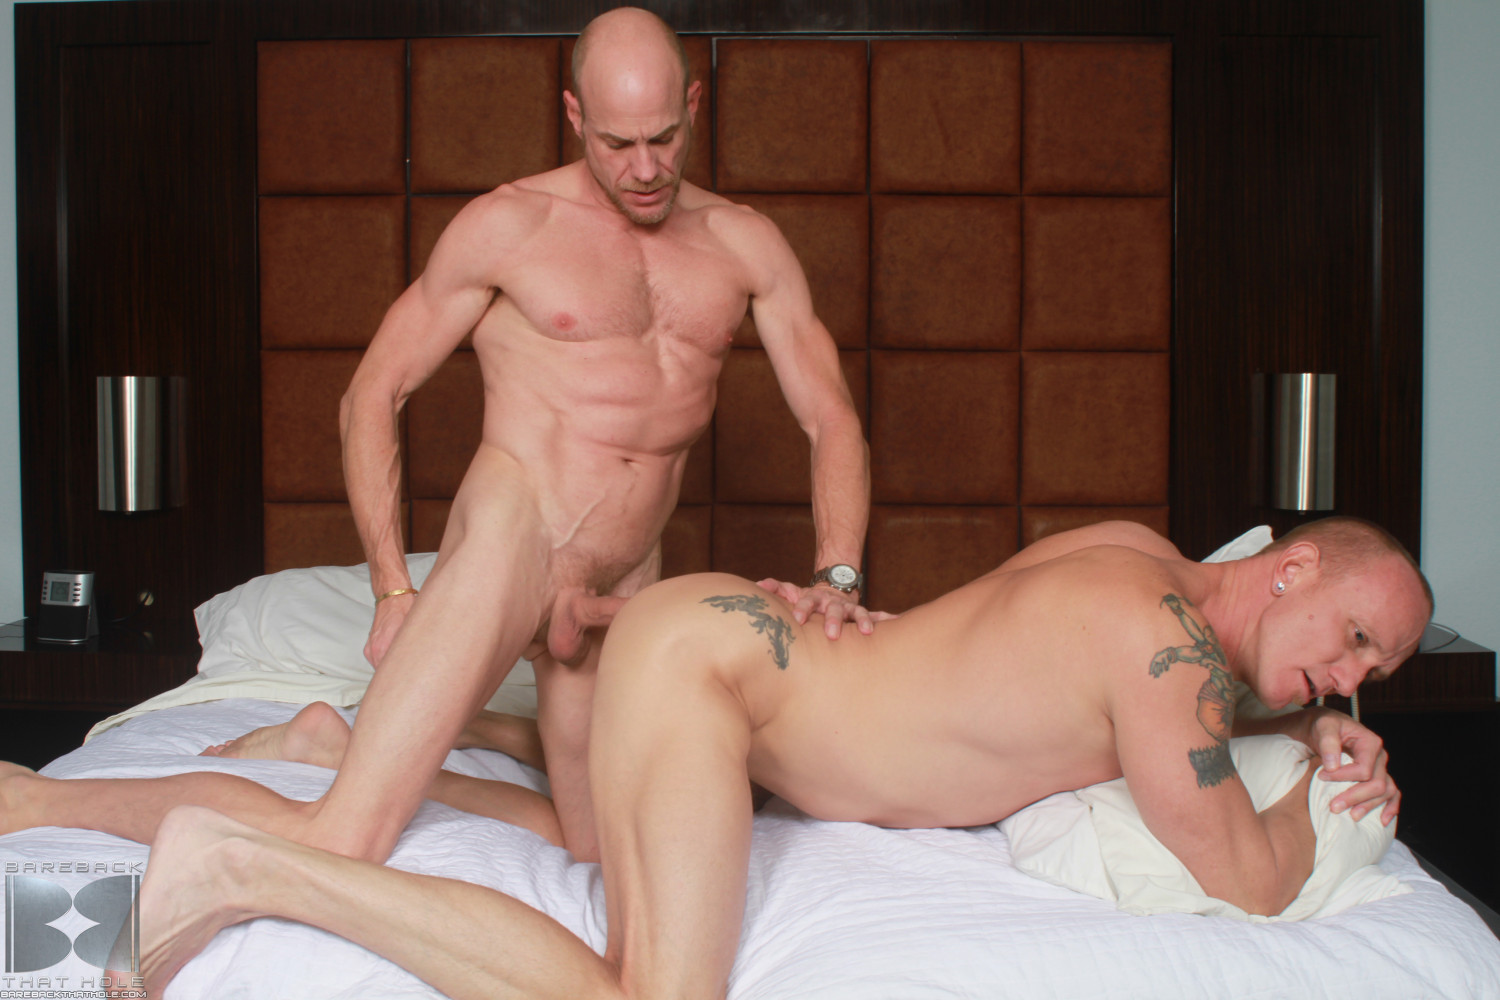 Bareback That Hole Parker and Mason Garet Muscle Daddy Barebacking 06 Amateur Muscle Daddy Fucks His Buddy Bareback With His Big Cock